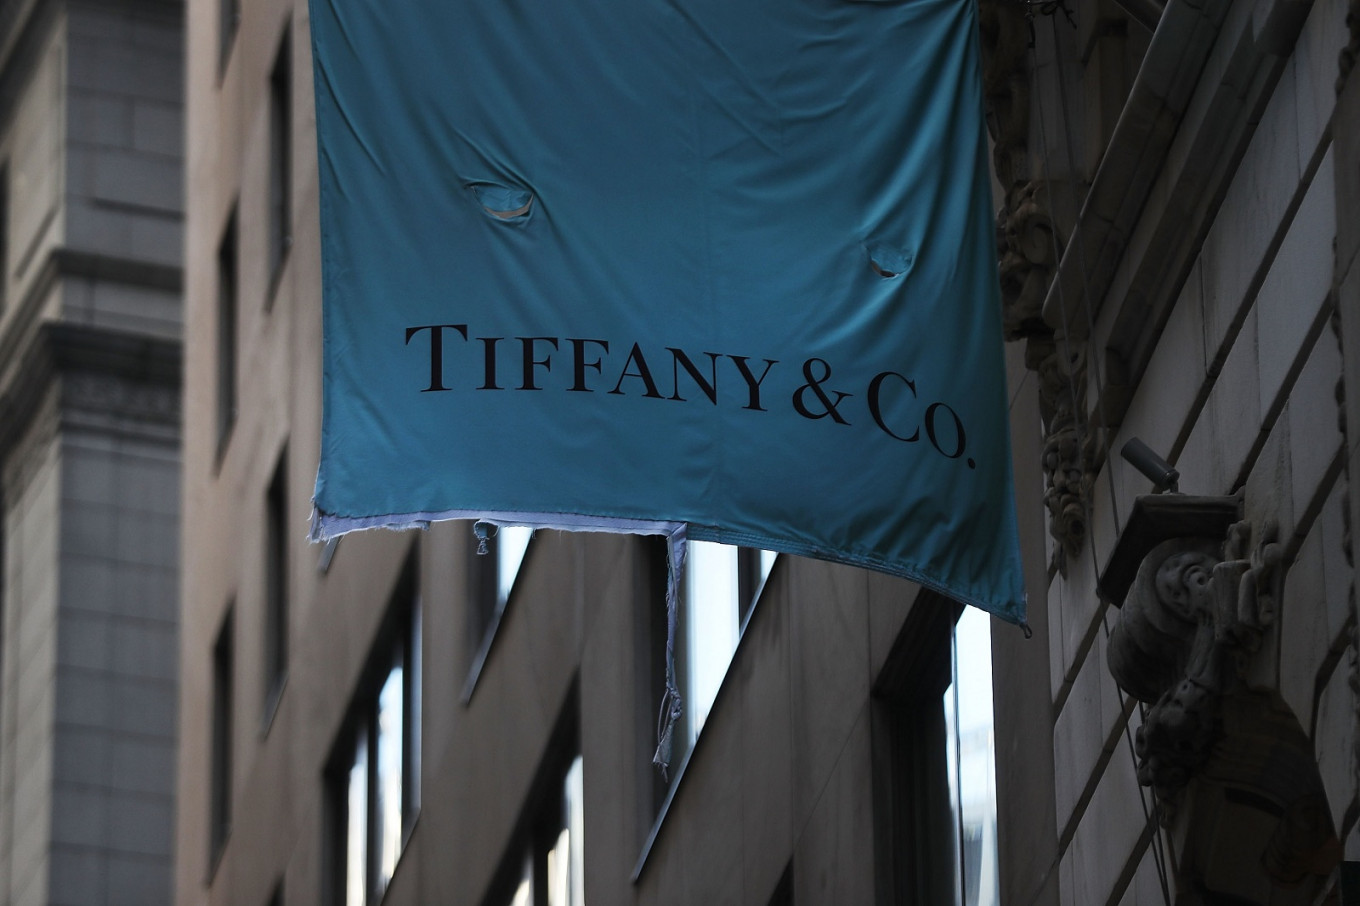 Tiffany's first European cafe to open in London on Valentine's Day